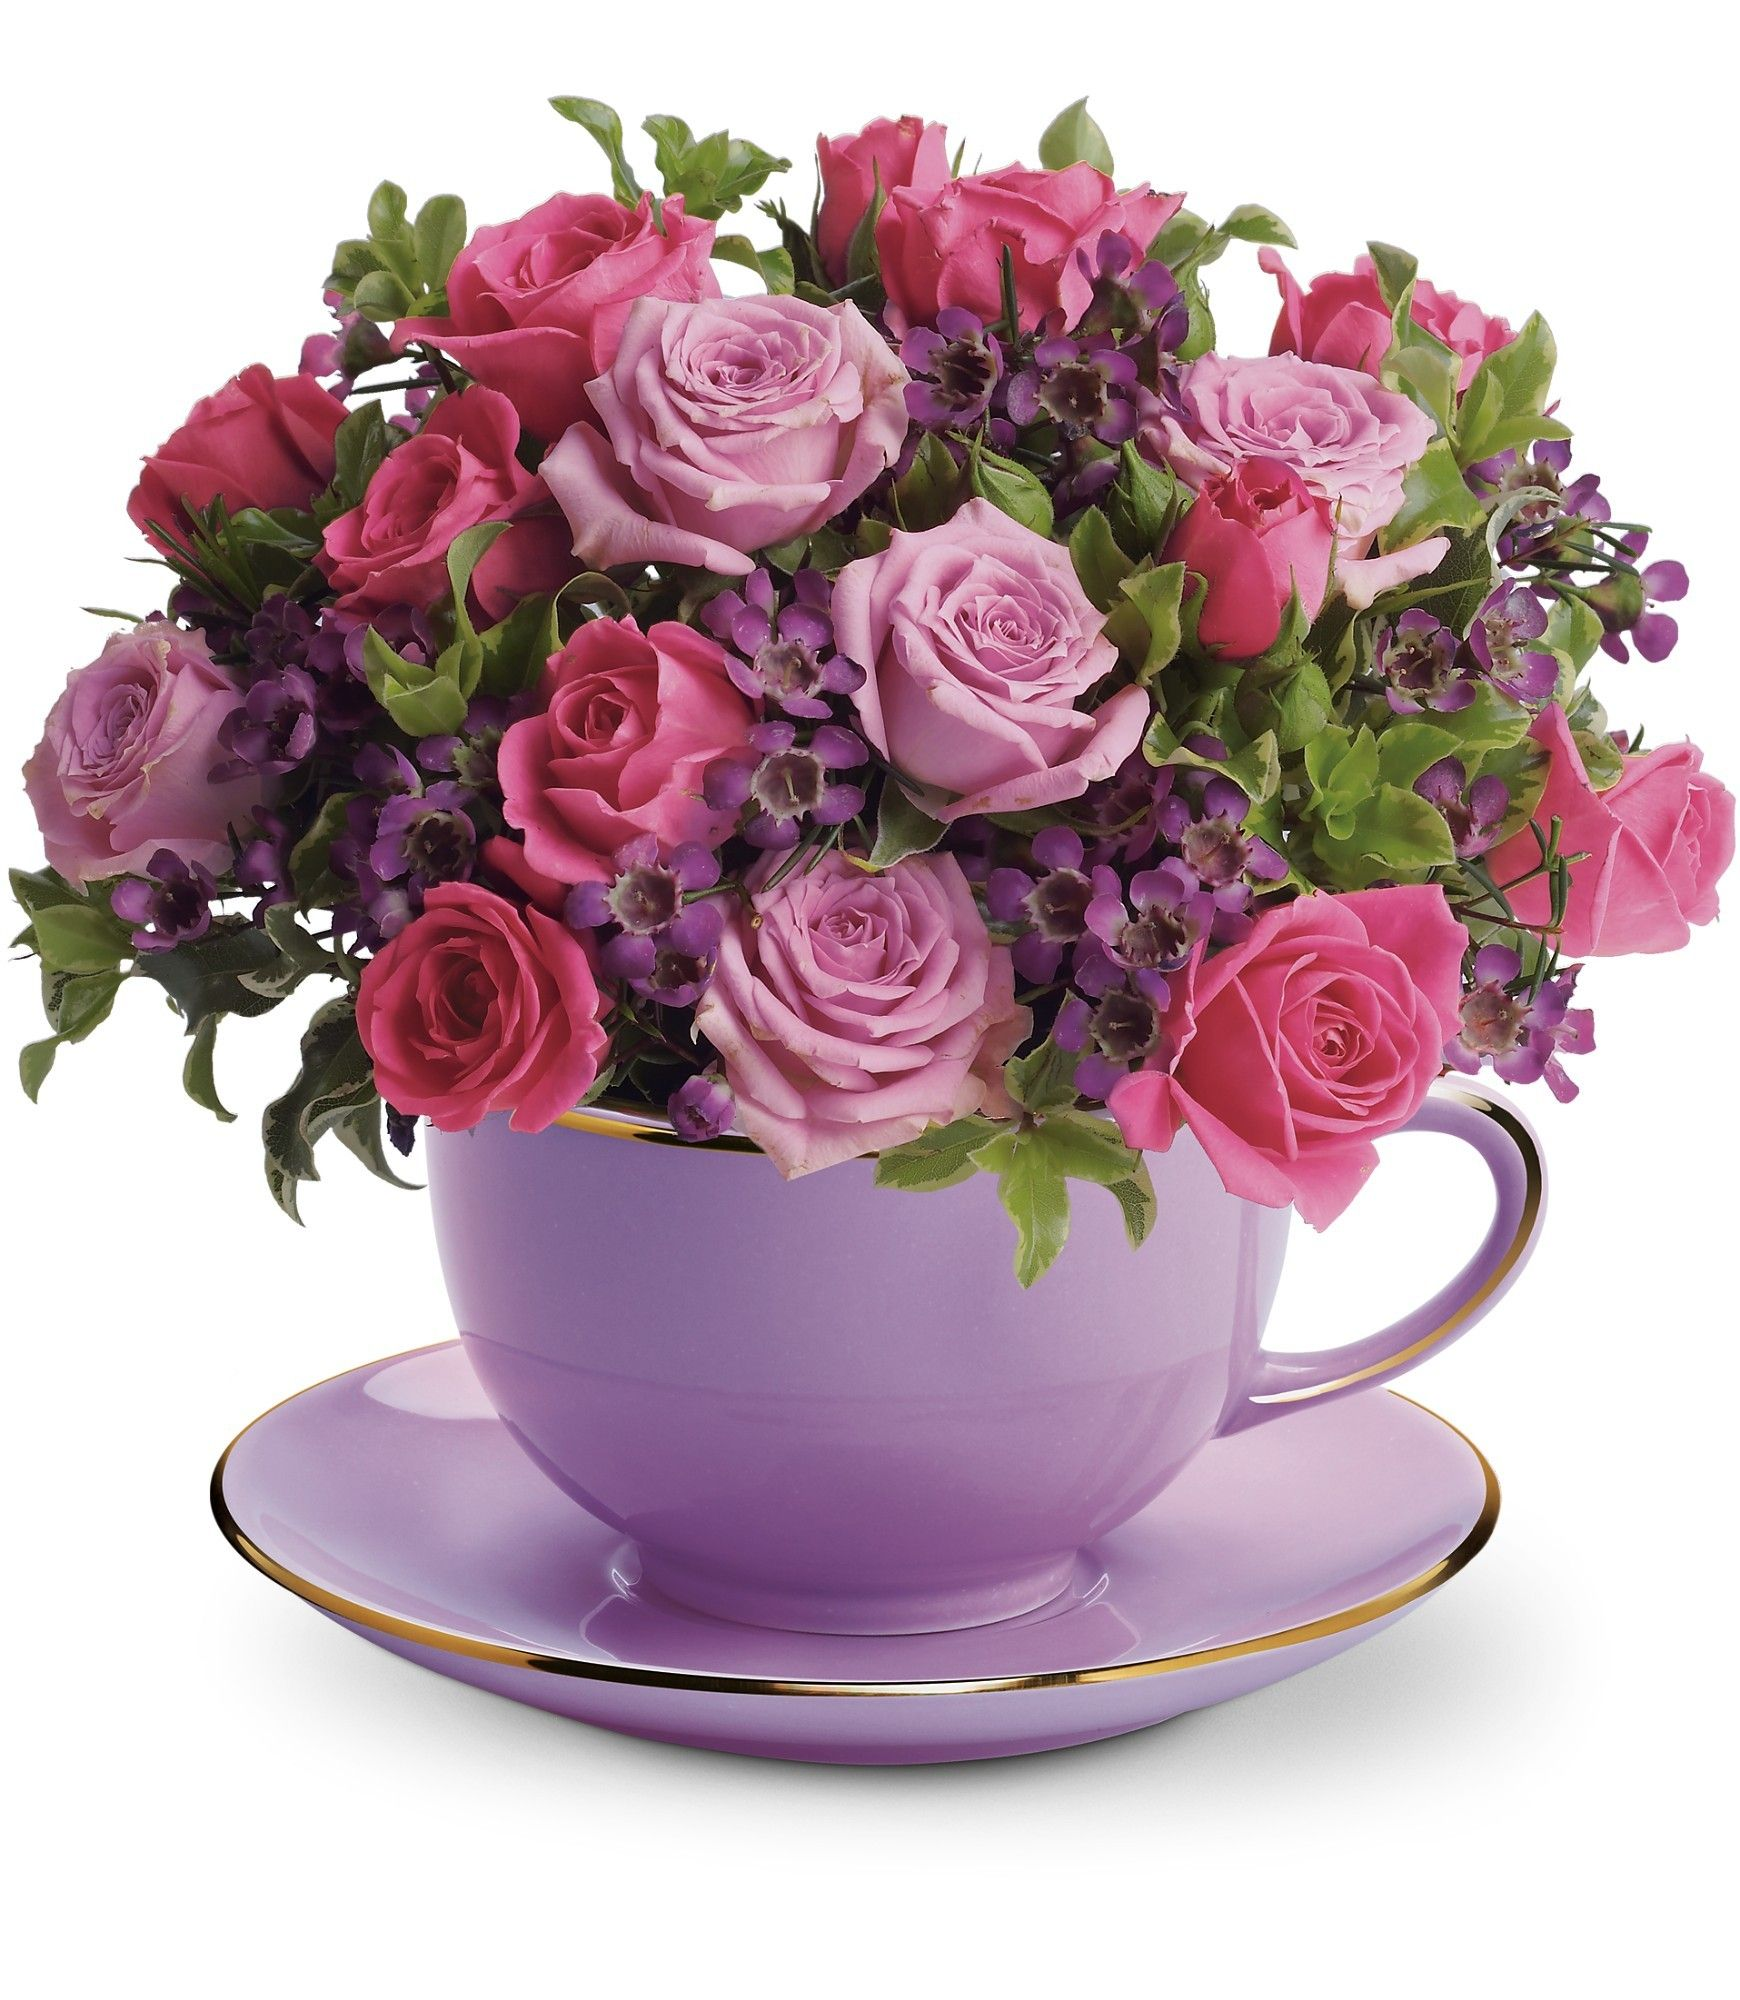 Image result for transparent roses png decoupage flowers in vases